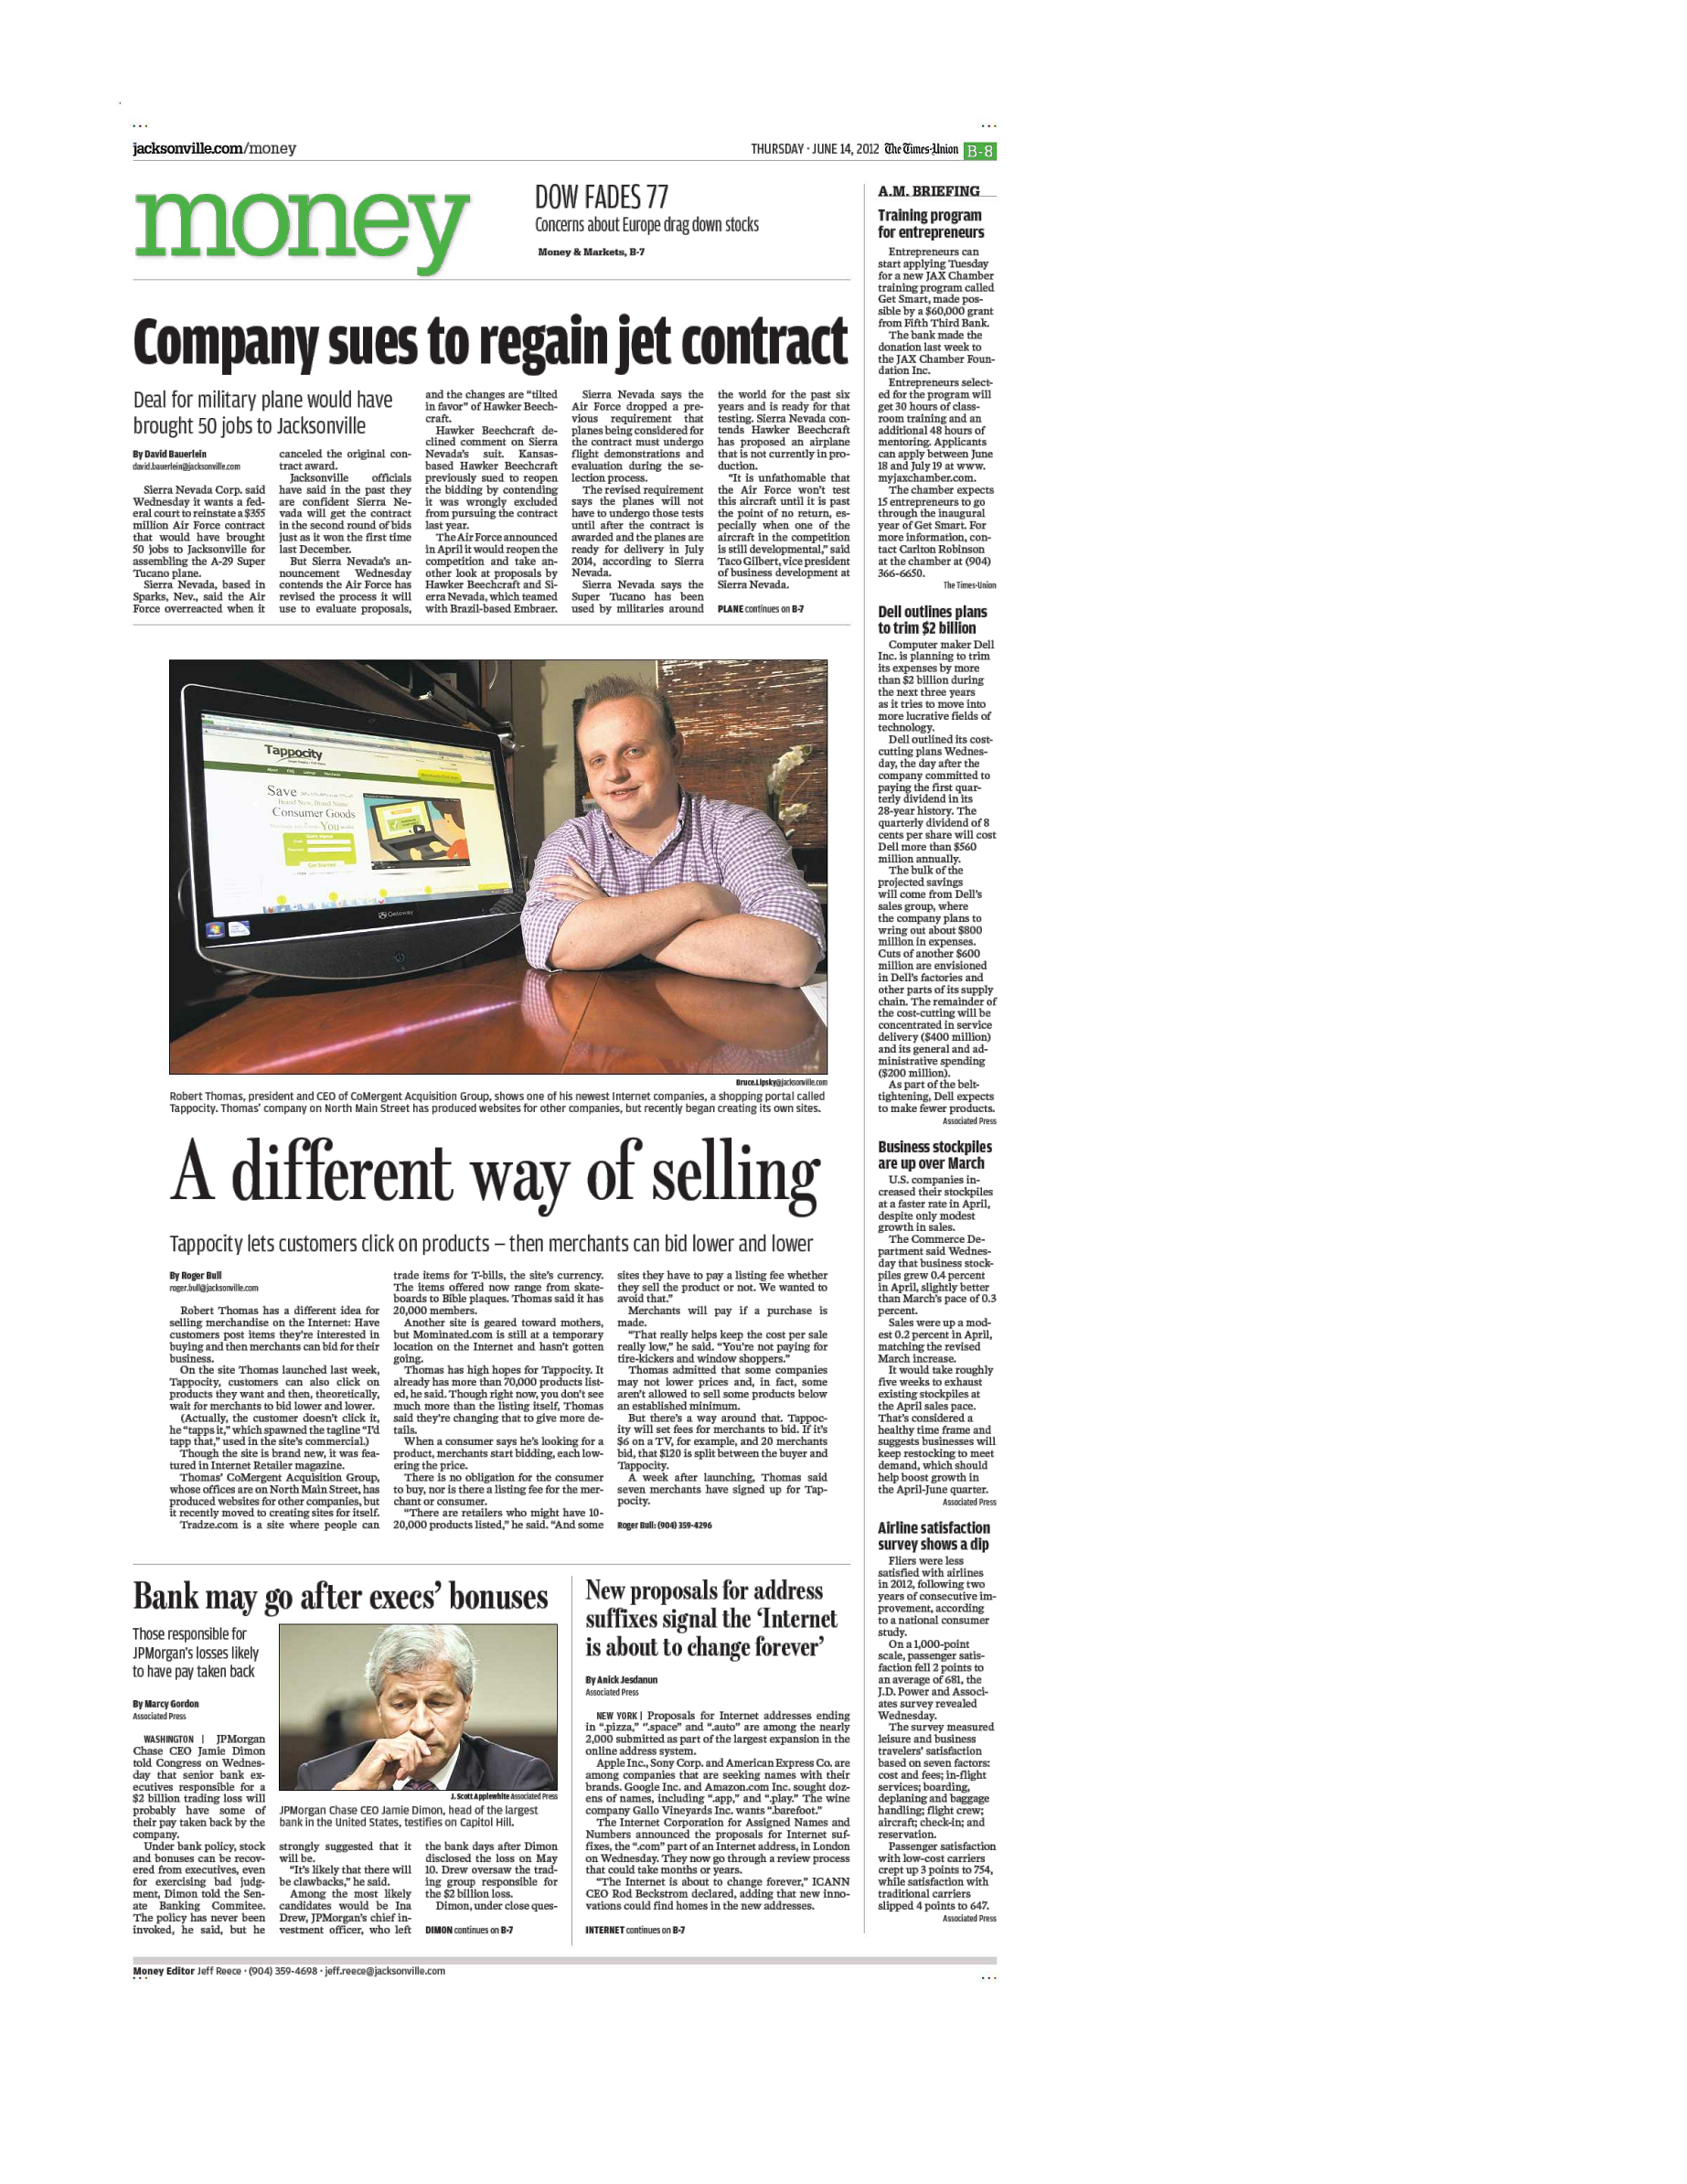 Tappocity's front page article in The Florida Times Union's business section.